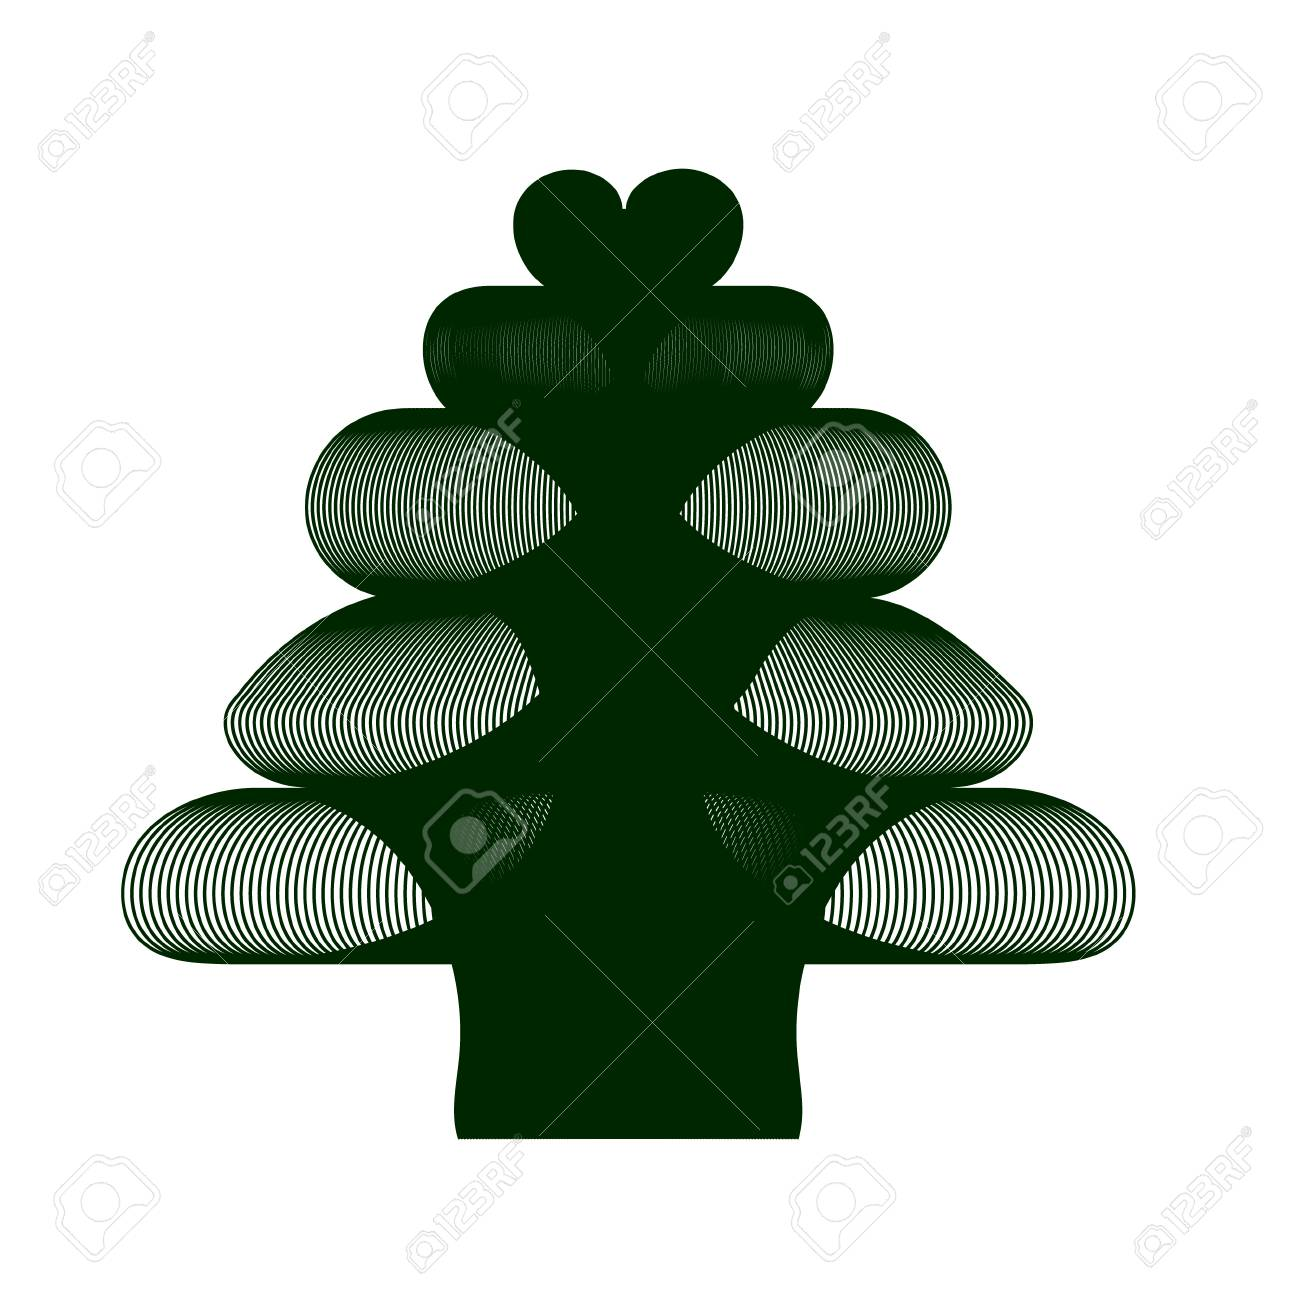 Modern Christmas Tree With A Heart On The Top Royalty Free Cliparts